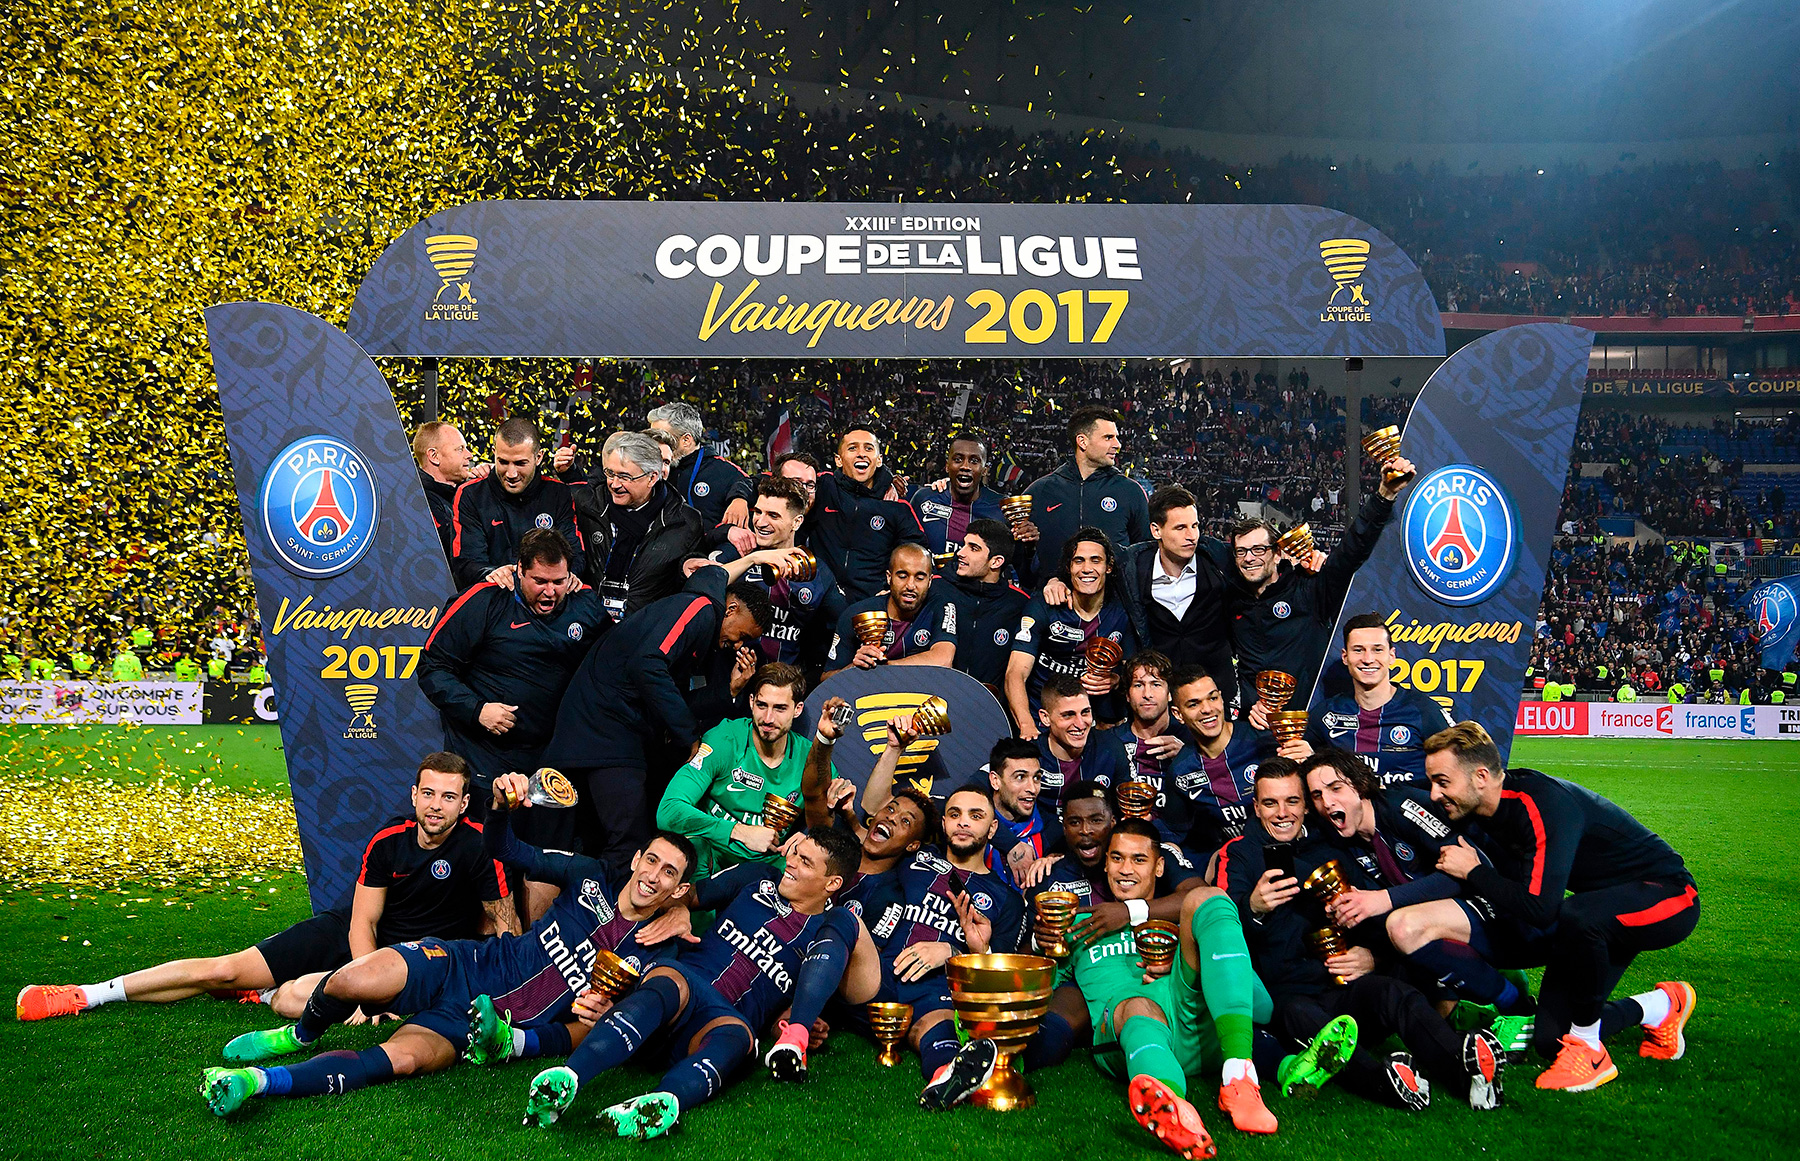 Match in photos psg win fourth consecutive coupe de la - Match psg montpellier coupe de france ...